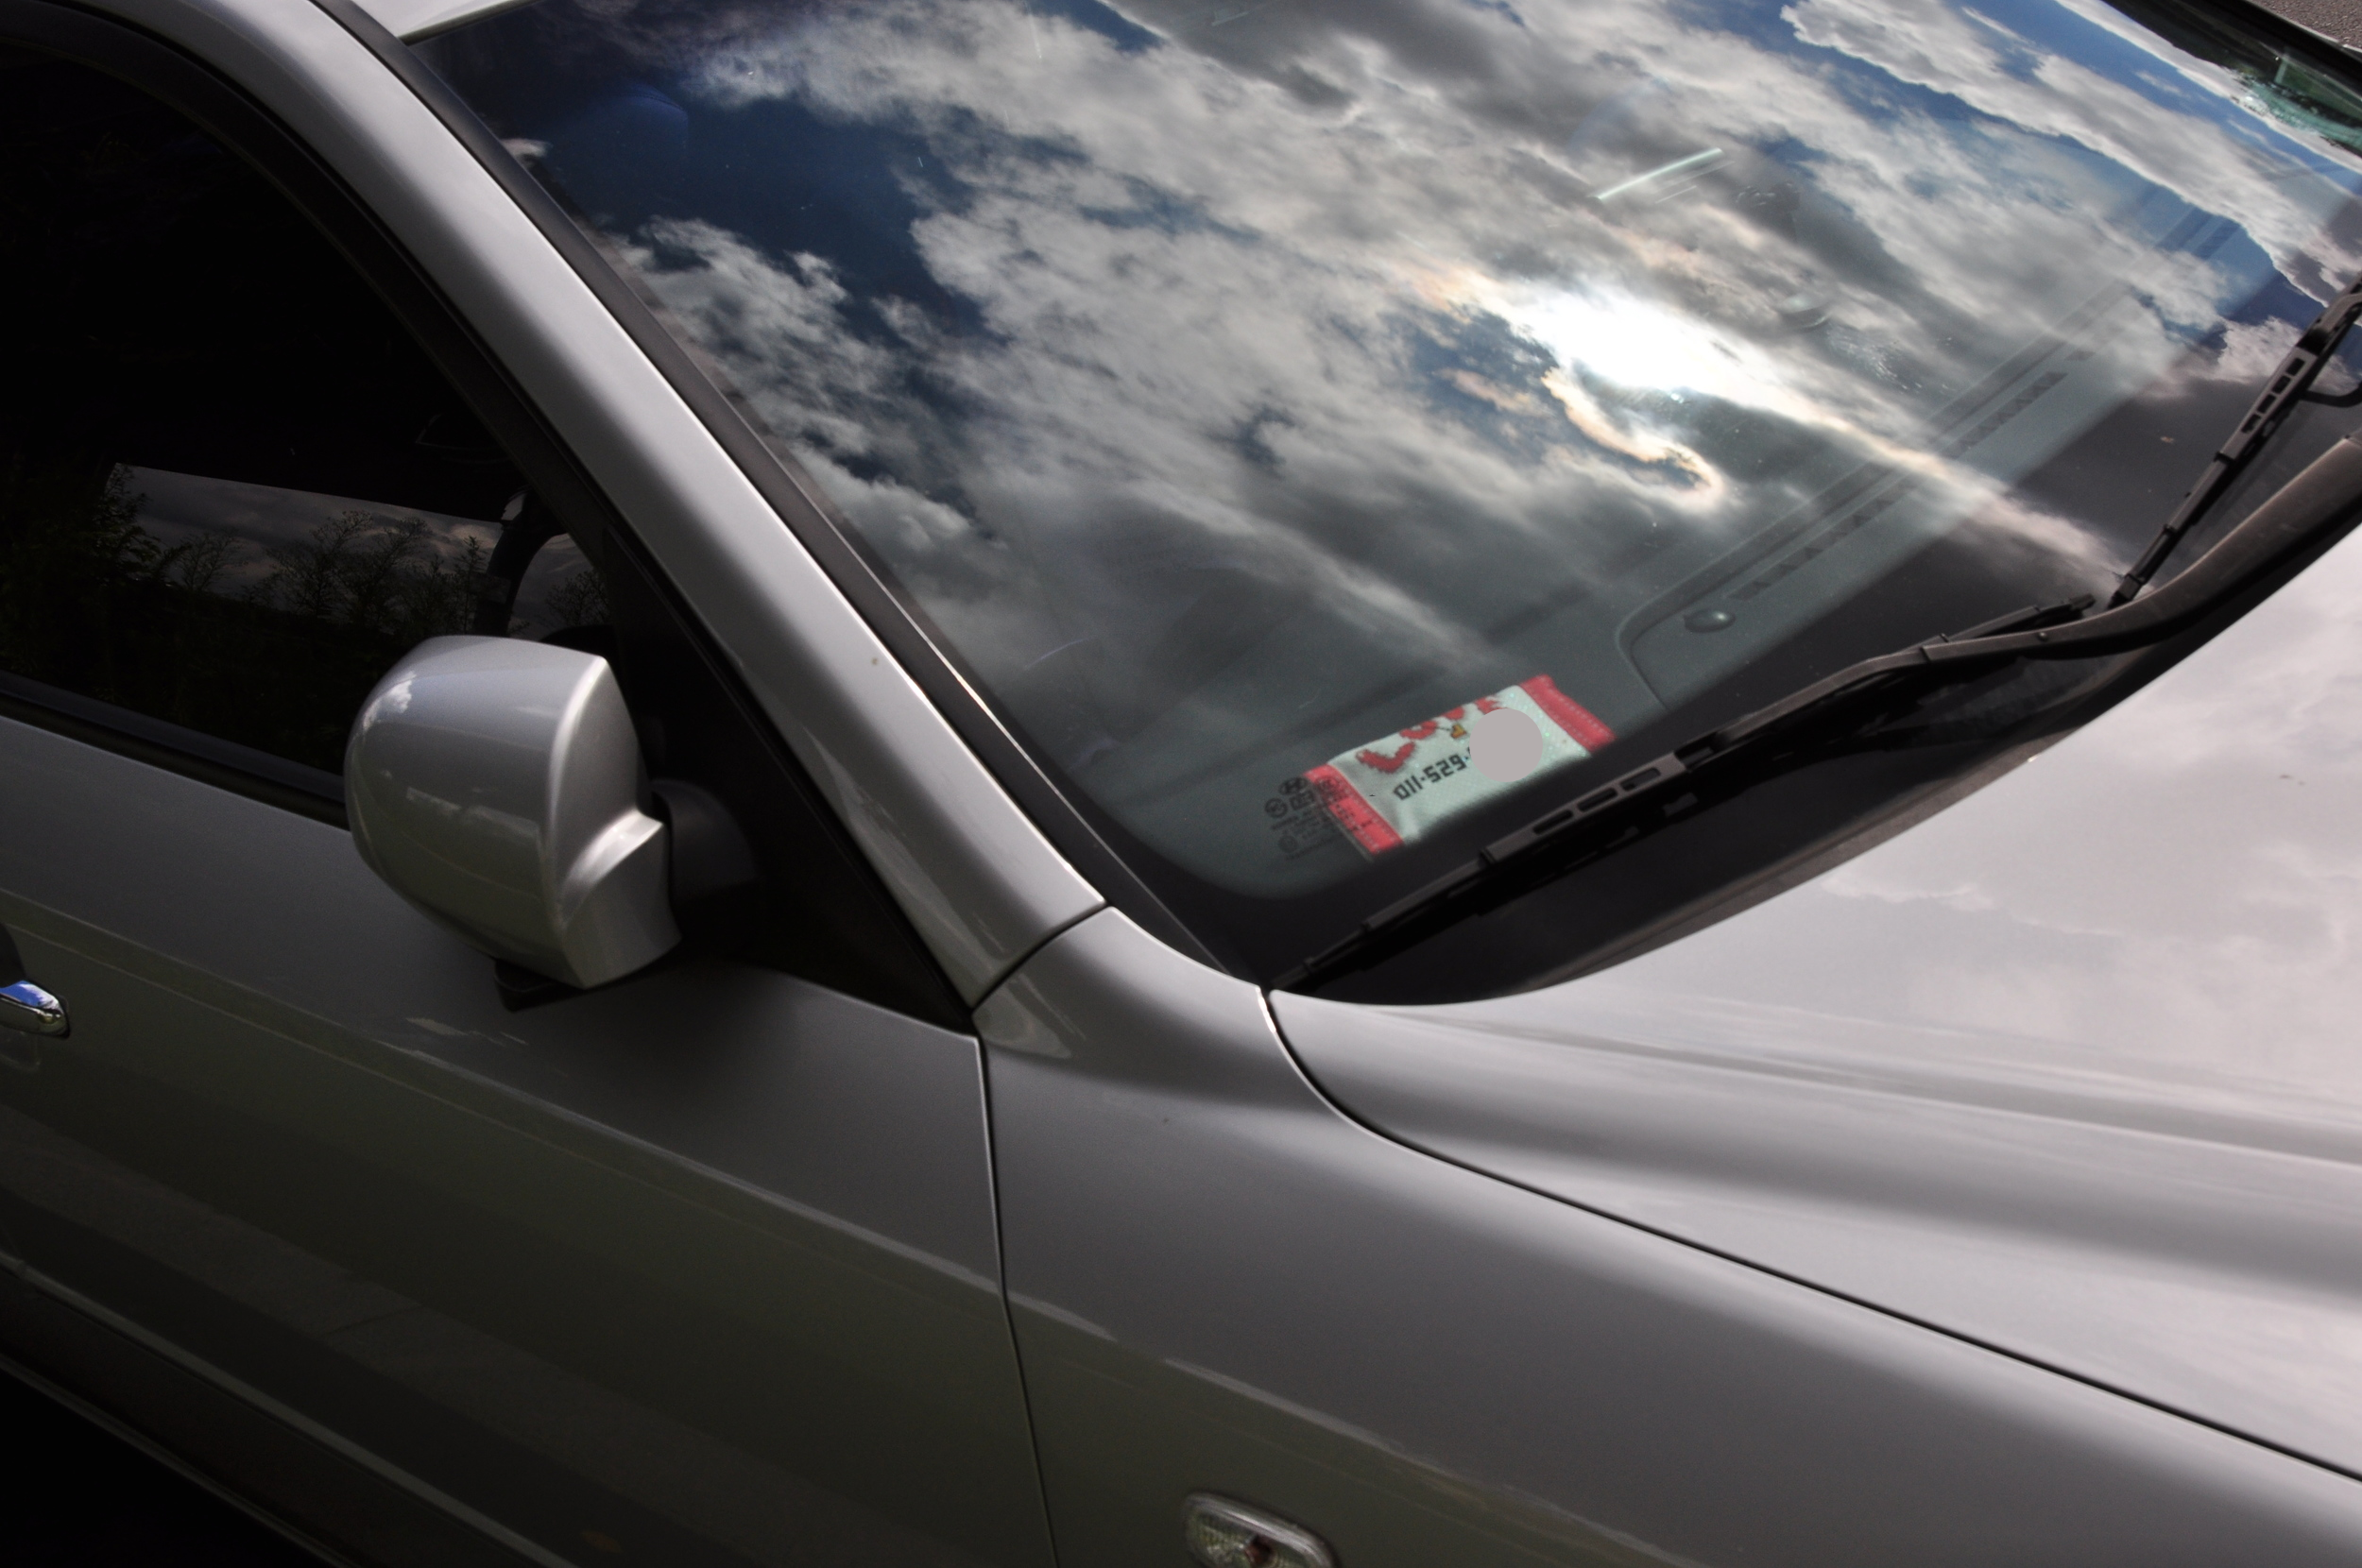 Many people means many cars. People may need to double-park, so they leave their phone number in on the dash so that they can be contacted if necessary.